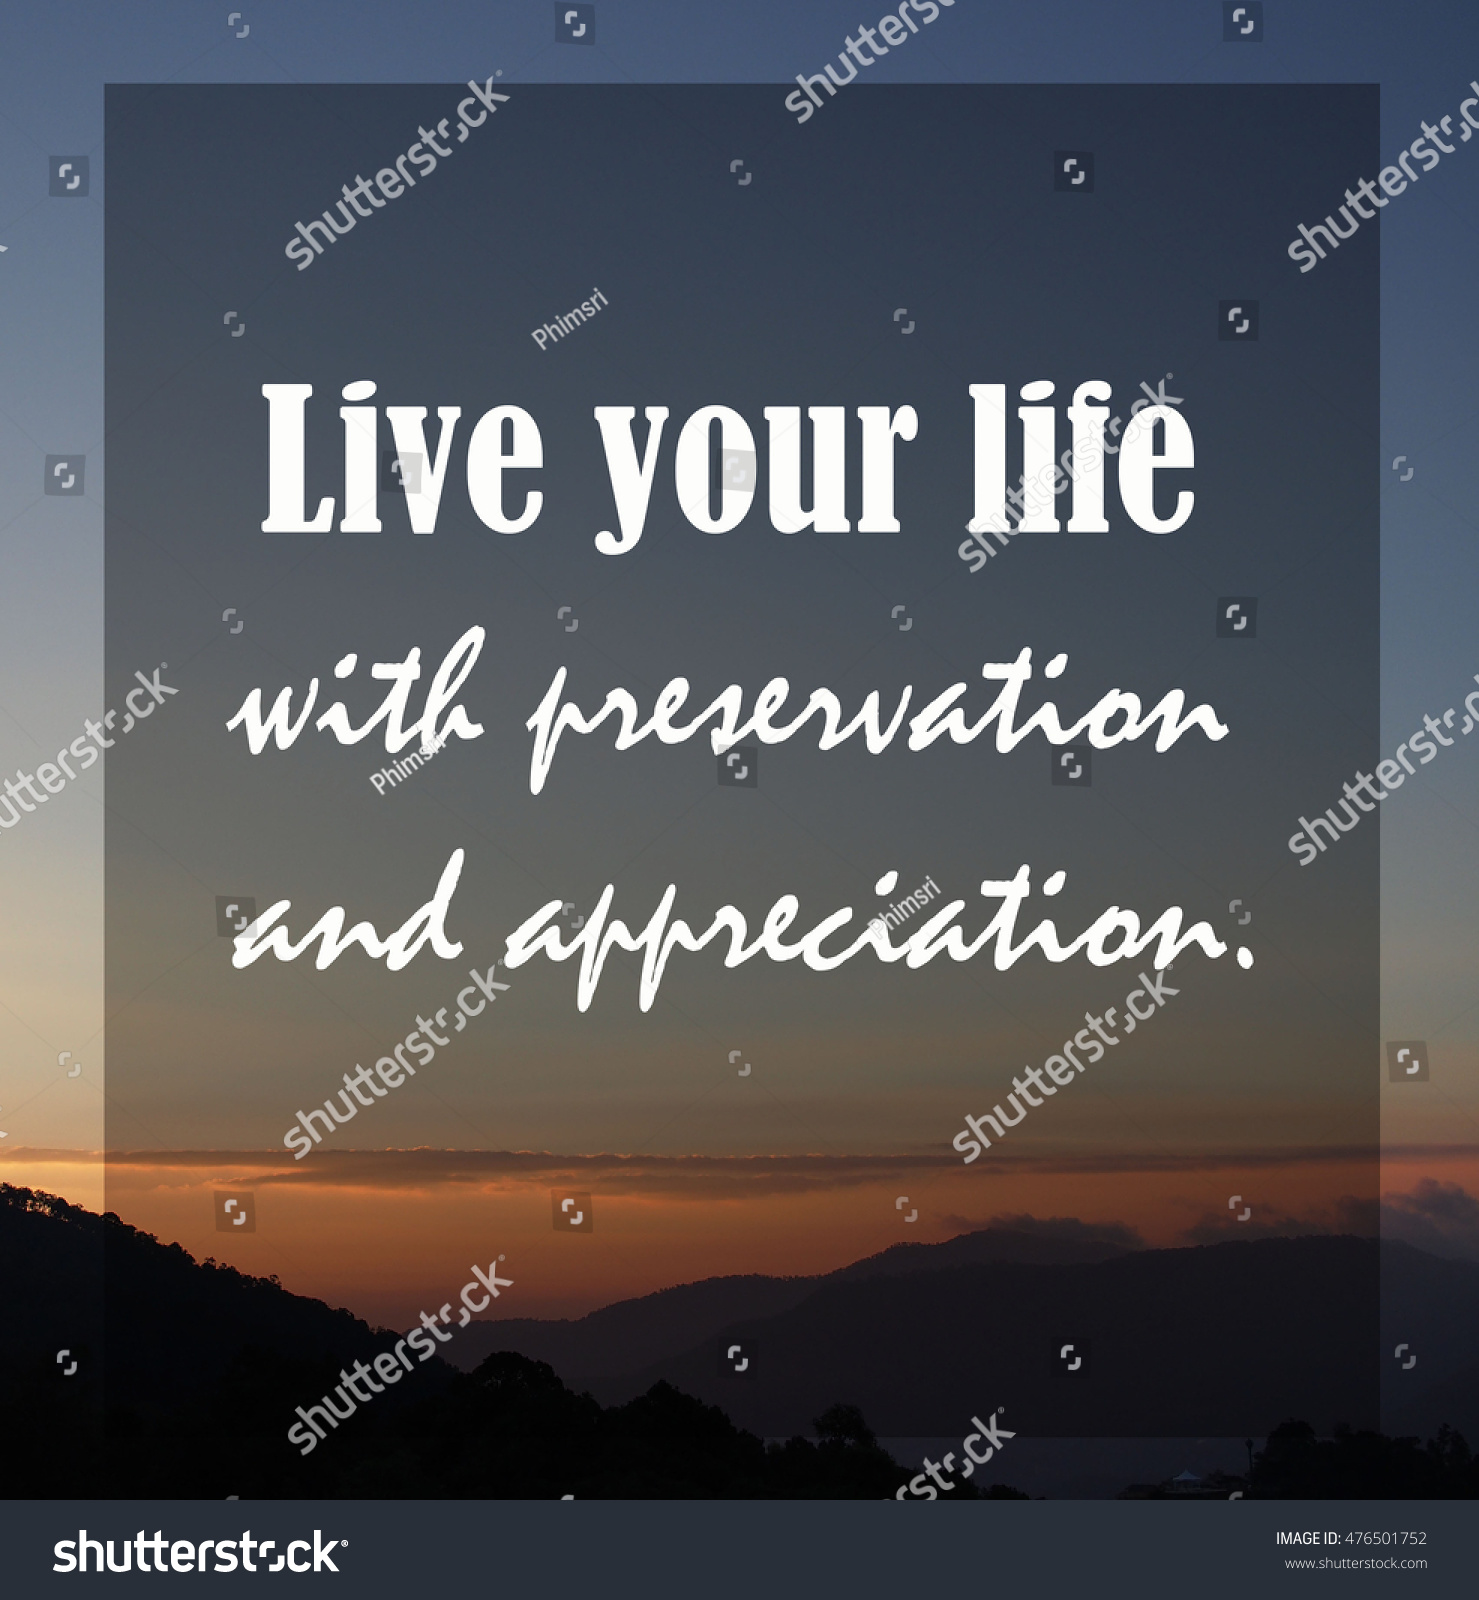 Life Quotes Inspiration Life Quotes Inspirational Quote Motivational Background Stock